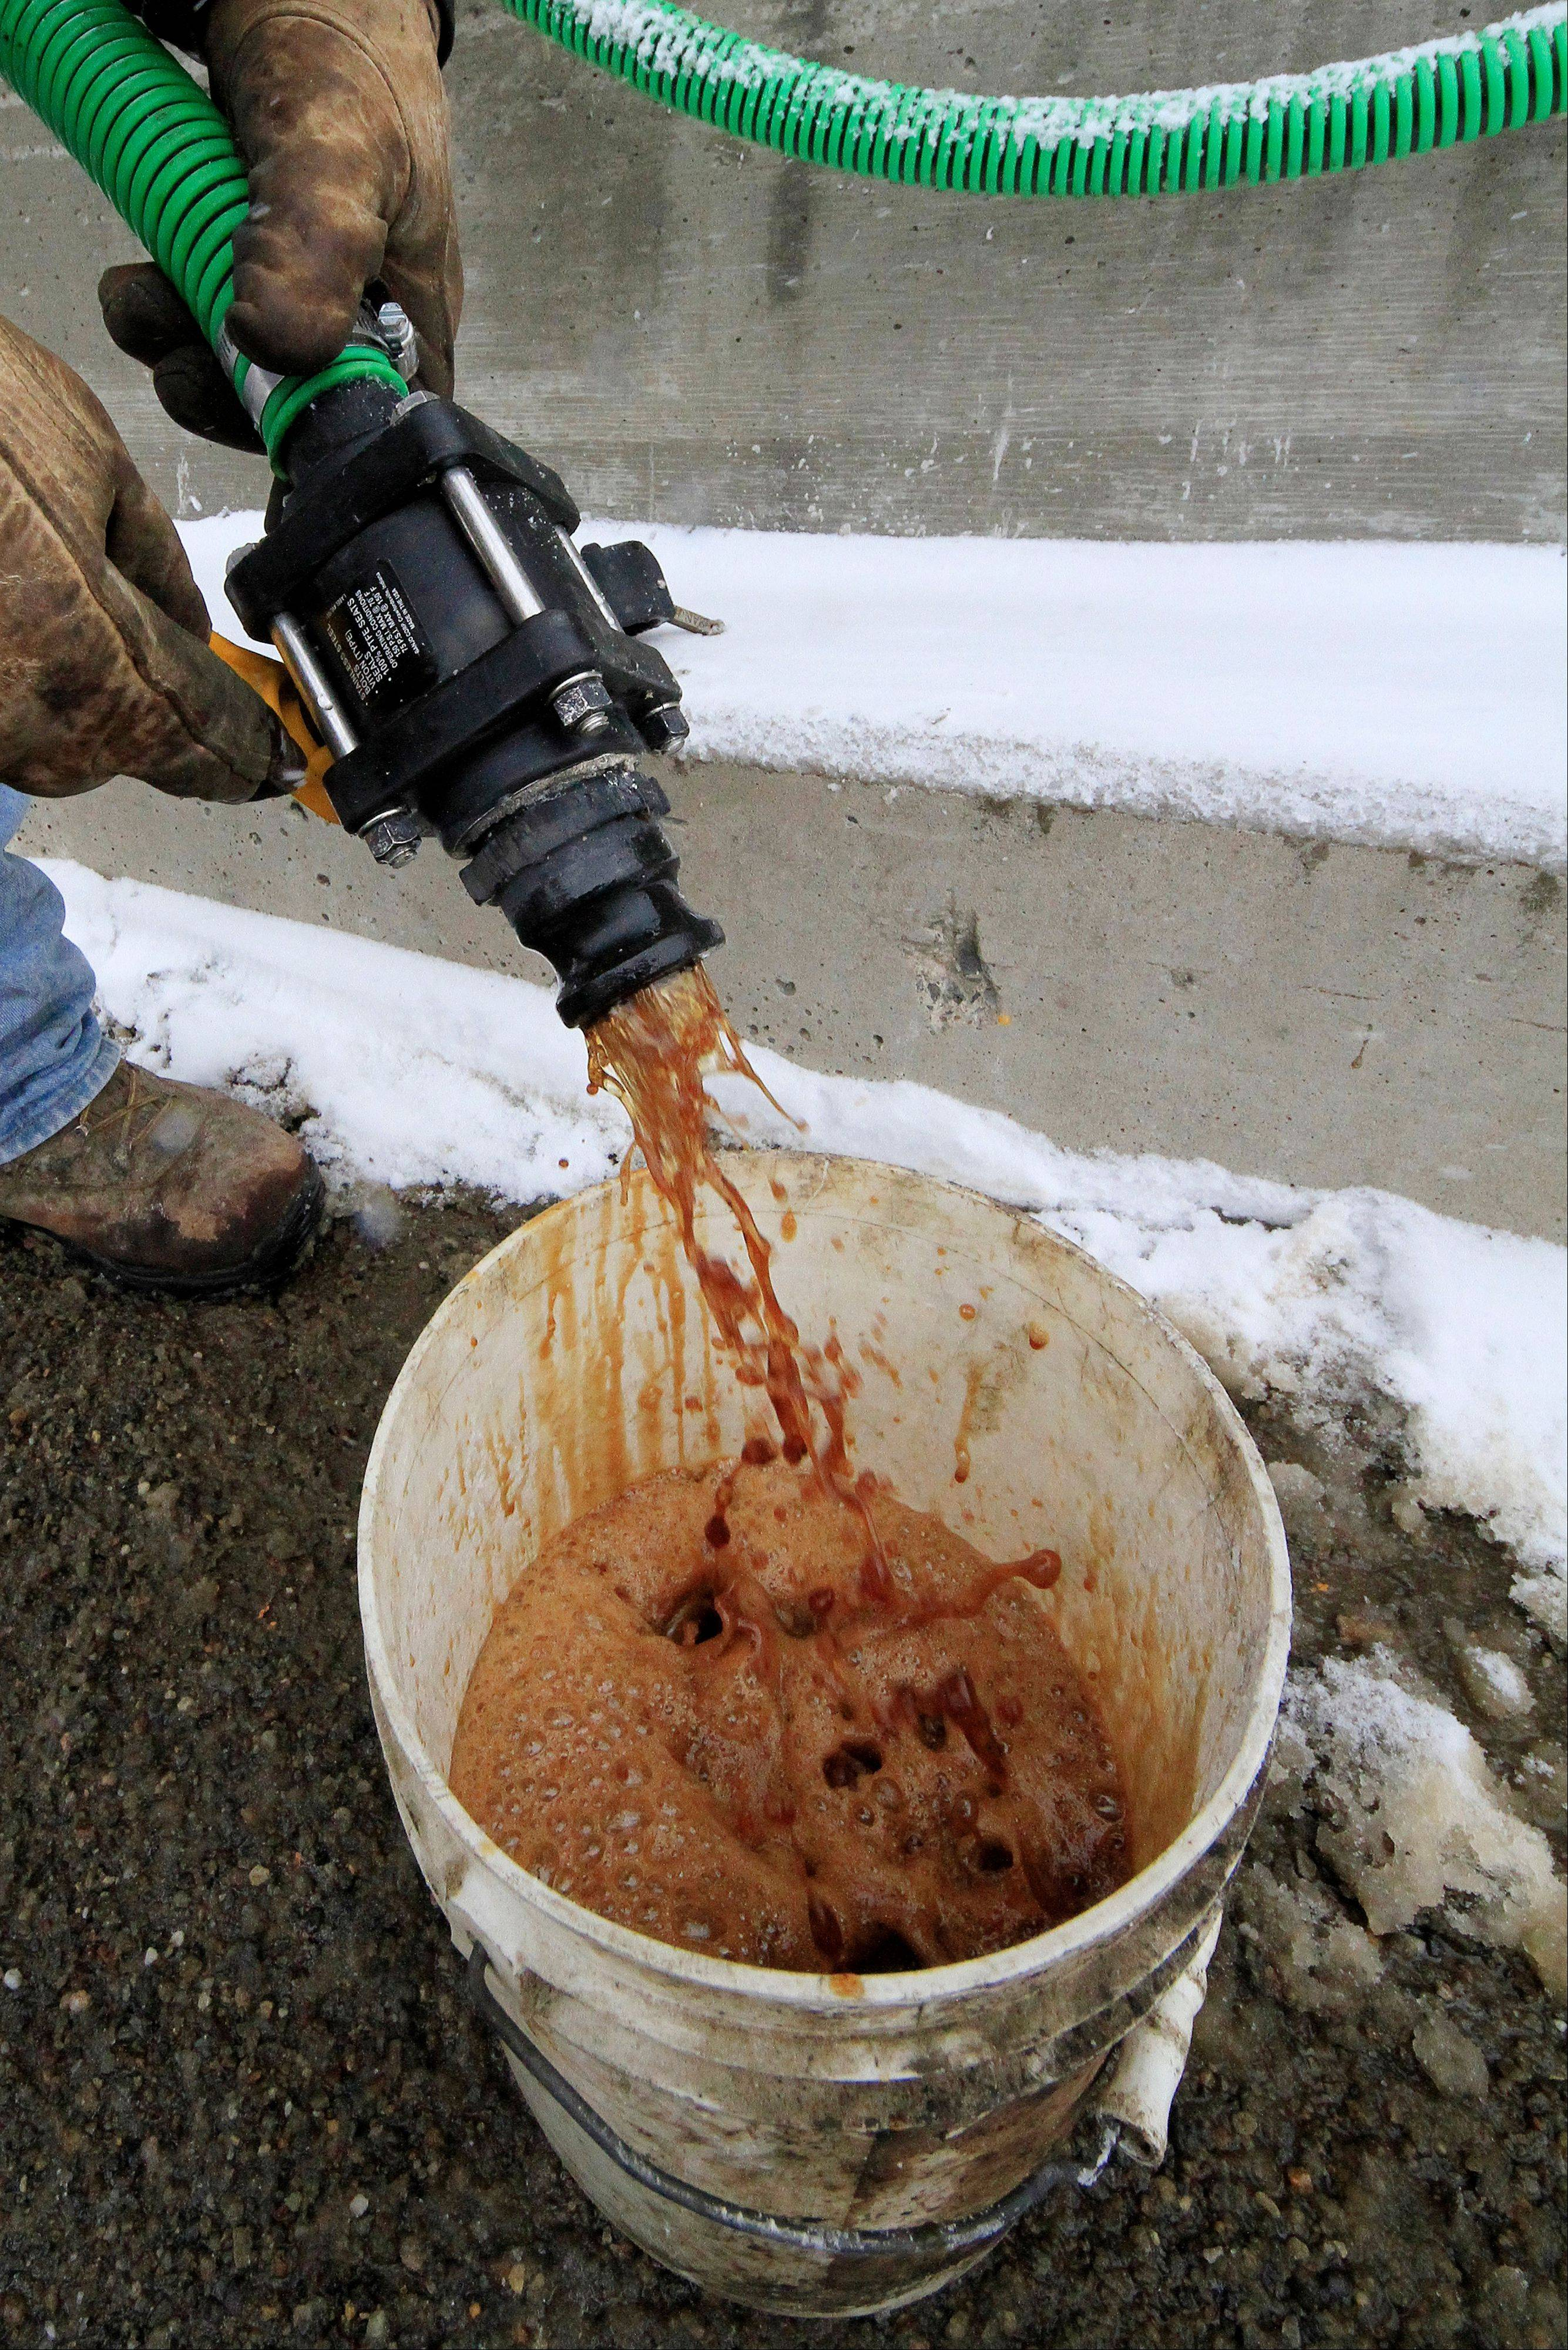 In cold snap, recipe for roads goes beyond salt